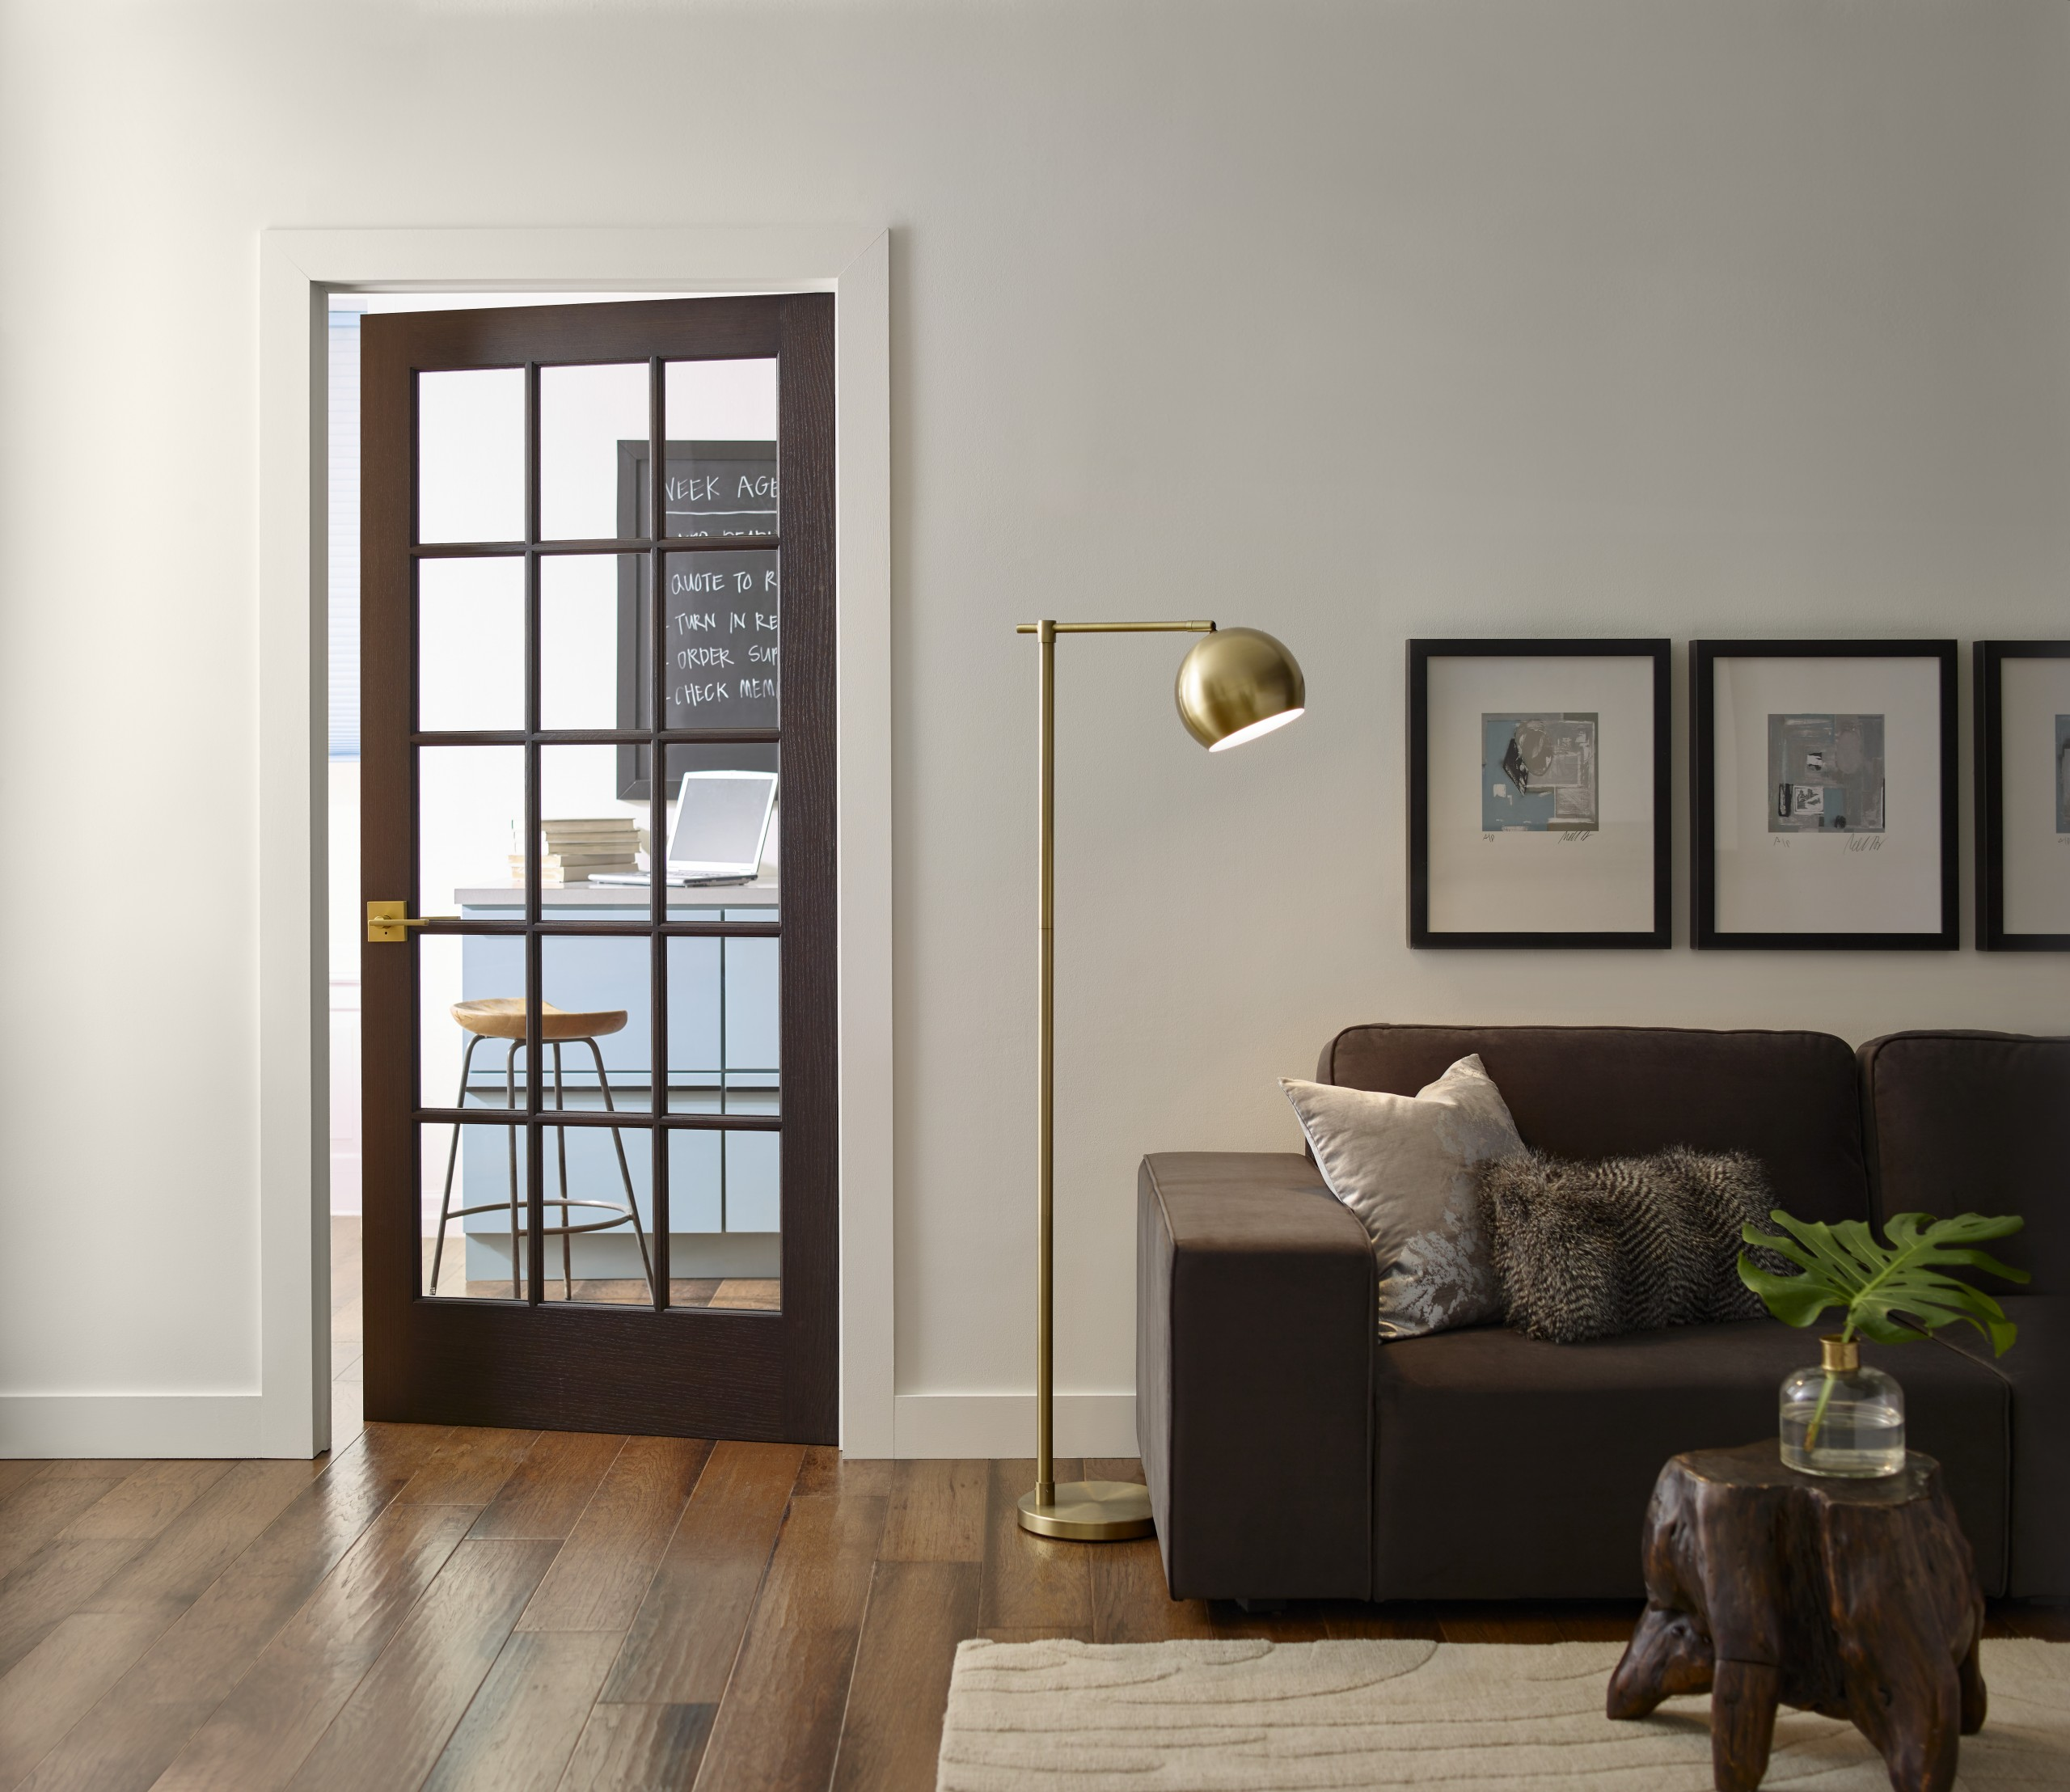 Doors - urkstra Lumber is proud to partner with Jeld-Wen, Lemieux and Trimlite for high quality interior doors in a myriad of styles, shapes and finishes at Designer Showcase.